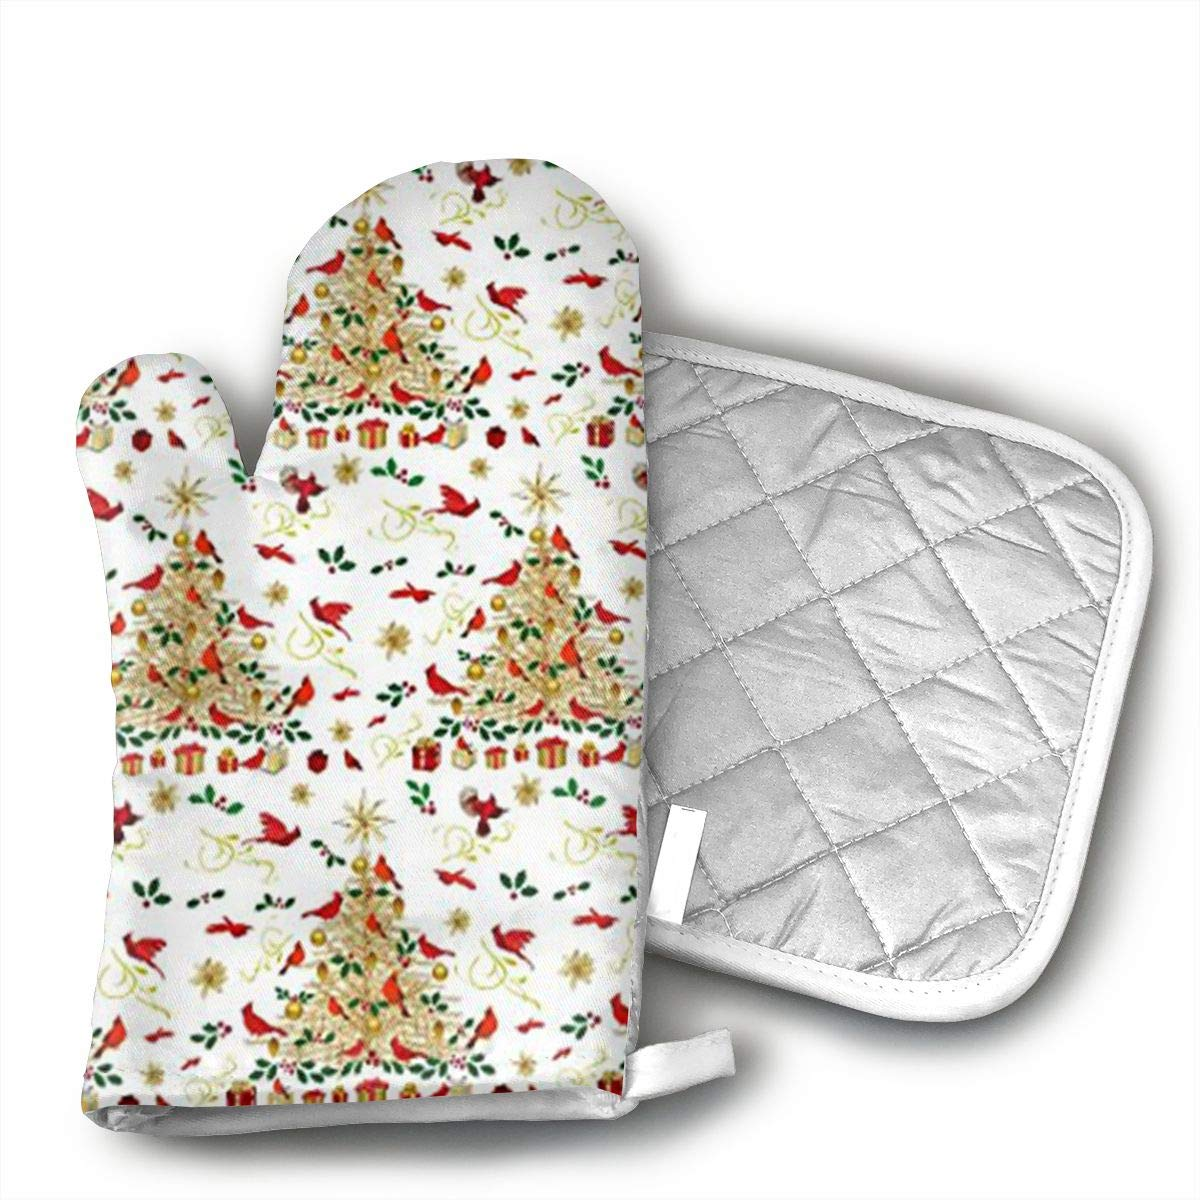 A Cardinal Christmas Wall Hanging Silicone Oven Mitts And Pot Holder Kitchen Set Non-Slip Grip,Heat Resistant,Oven Gloves And Pot Holders 2pcs Set For BBQ Cooking Baking,Grilling,Machine Washable